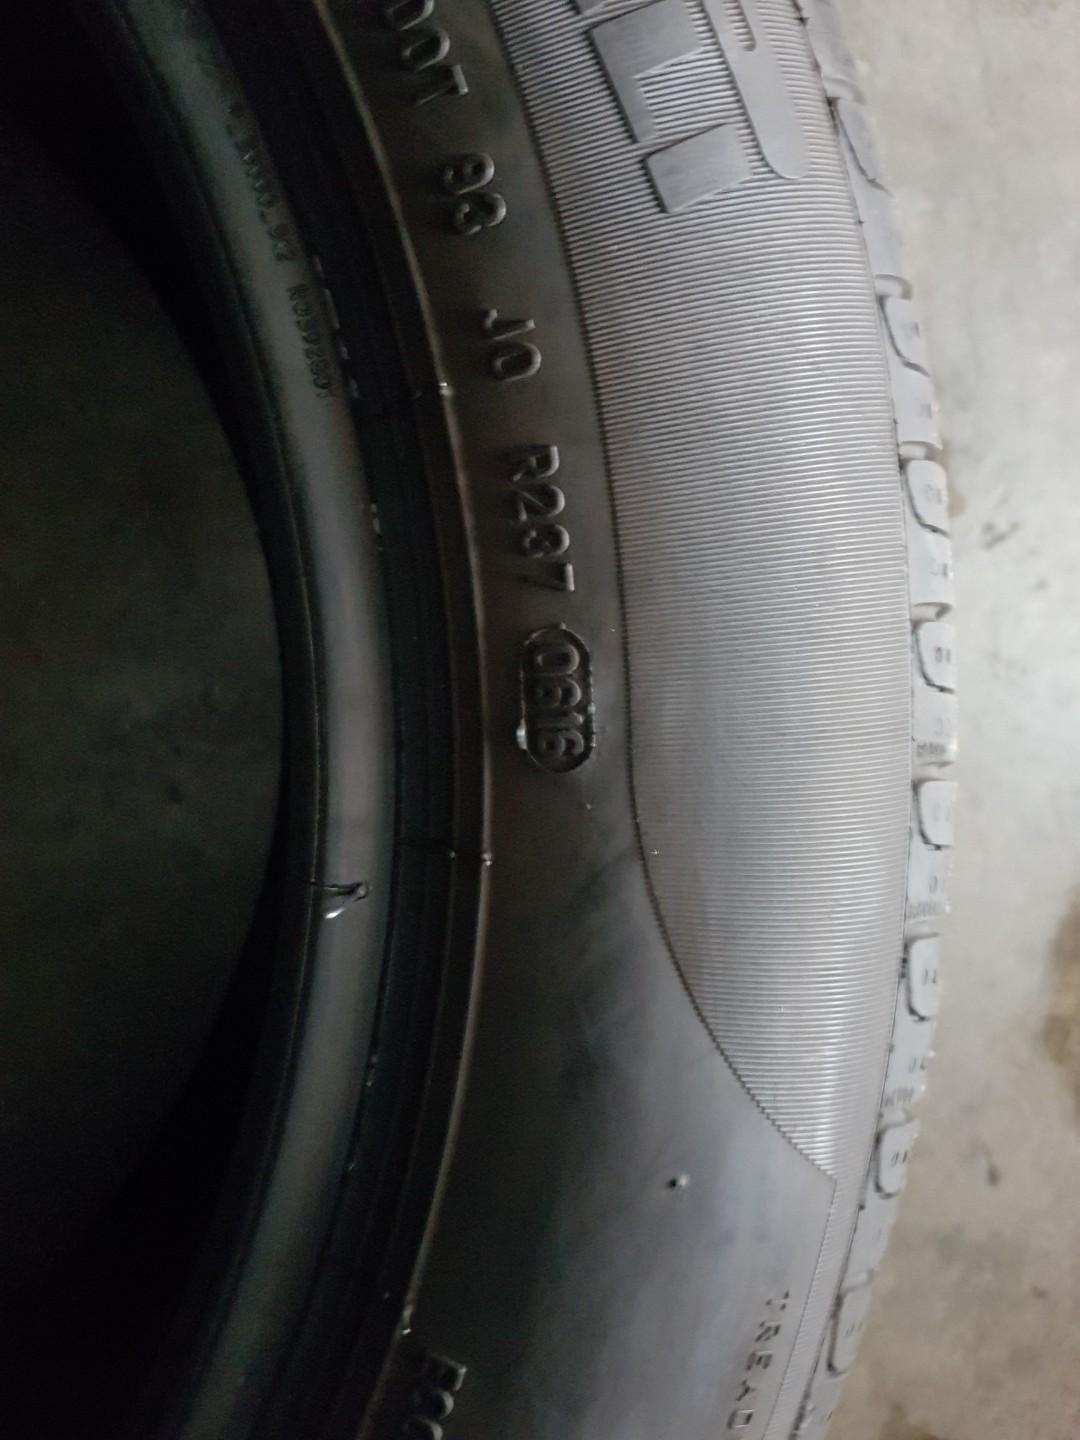 Used pirelli 215 55 17 ..2 pcs avail...$25 each